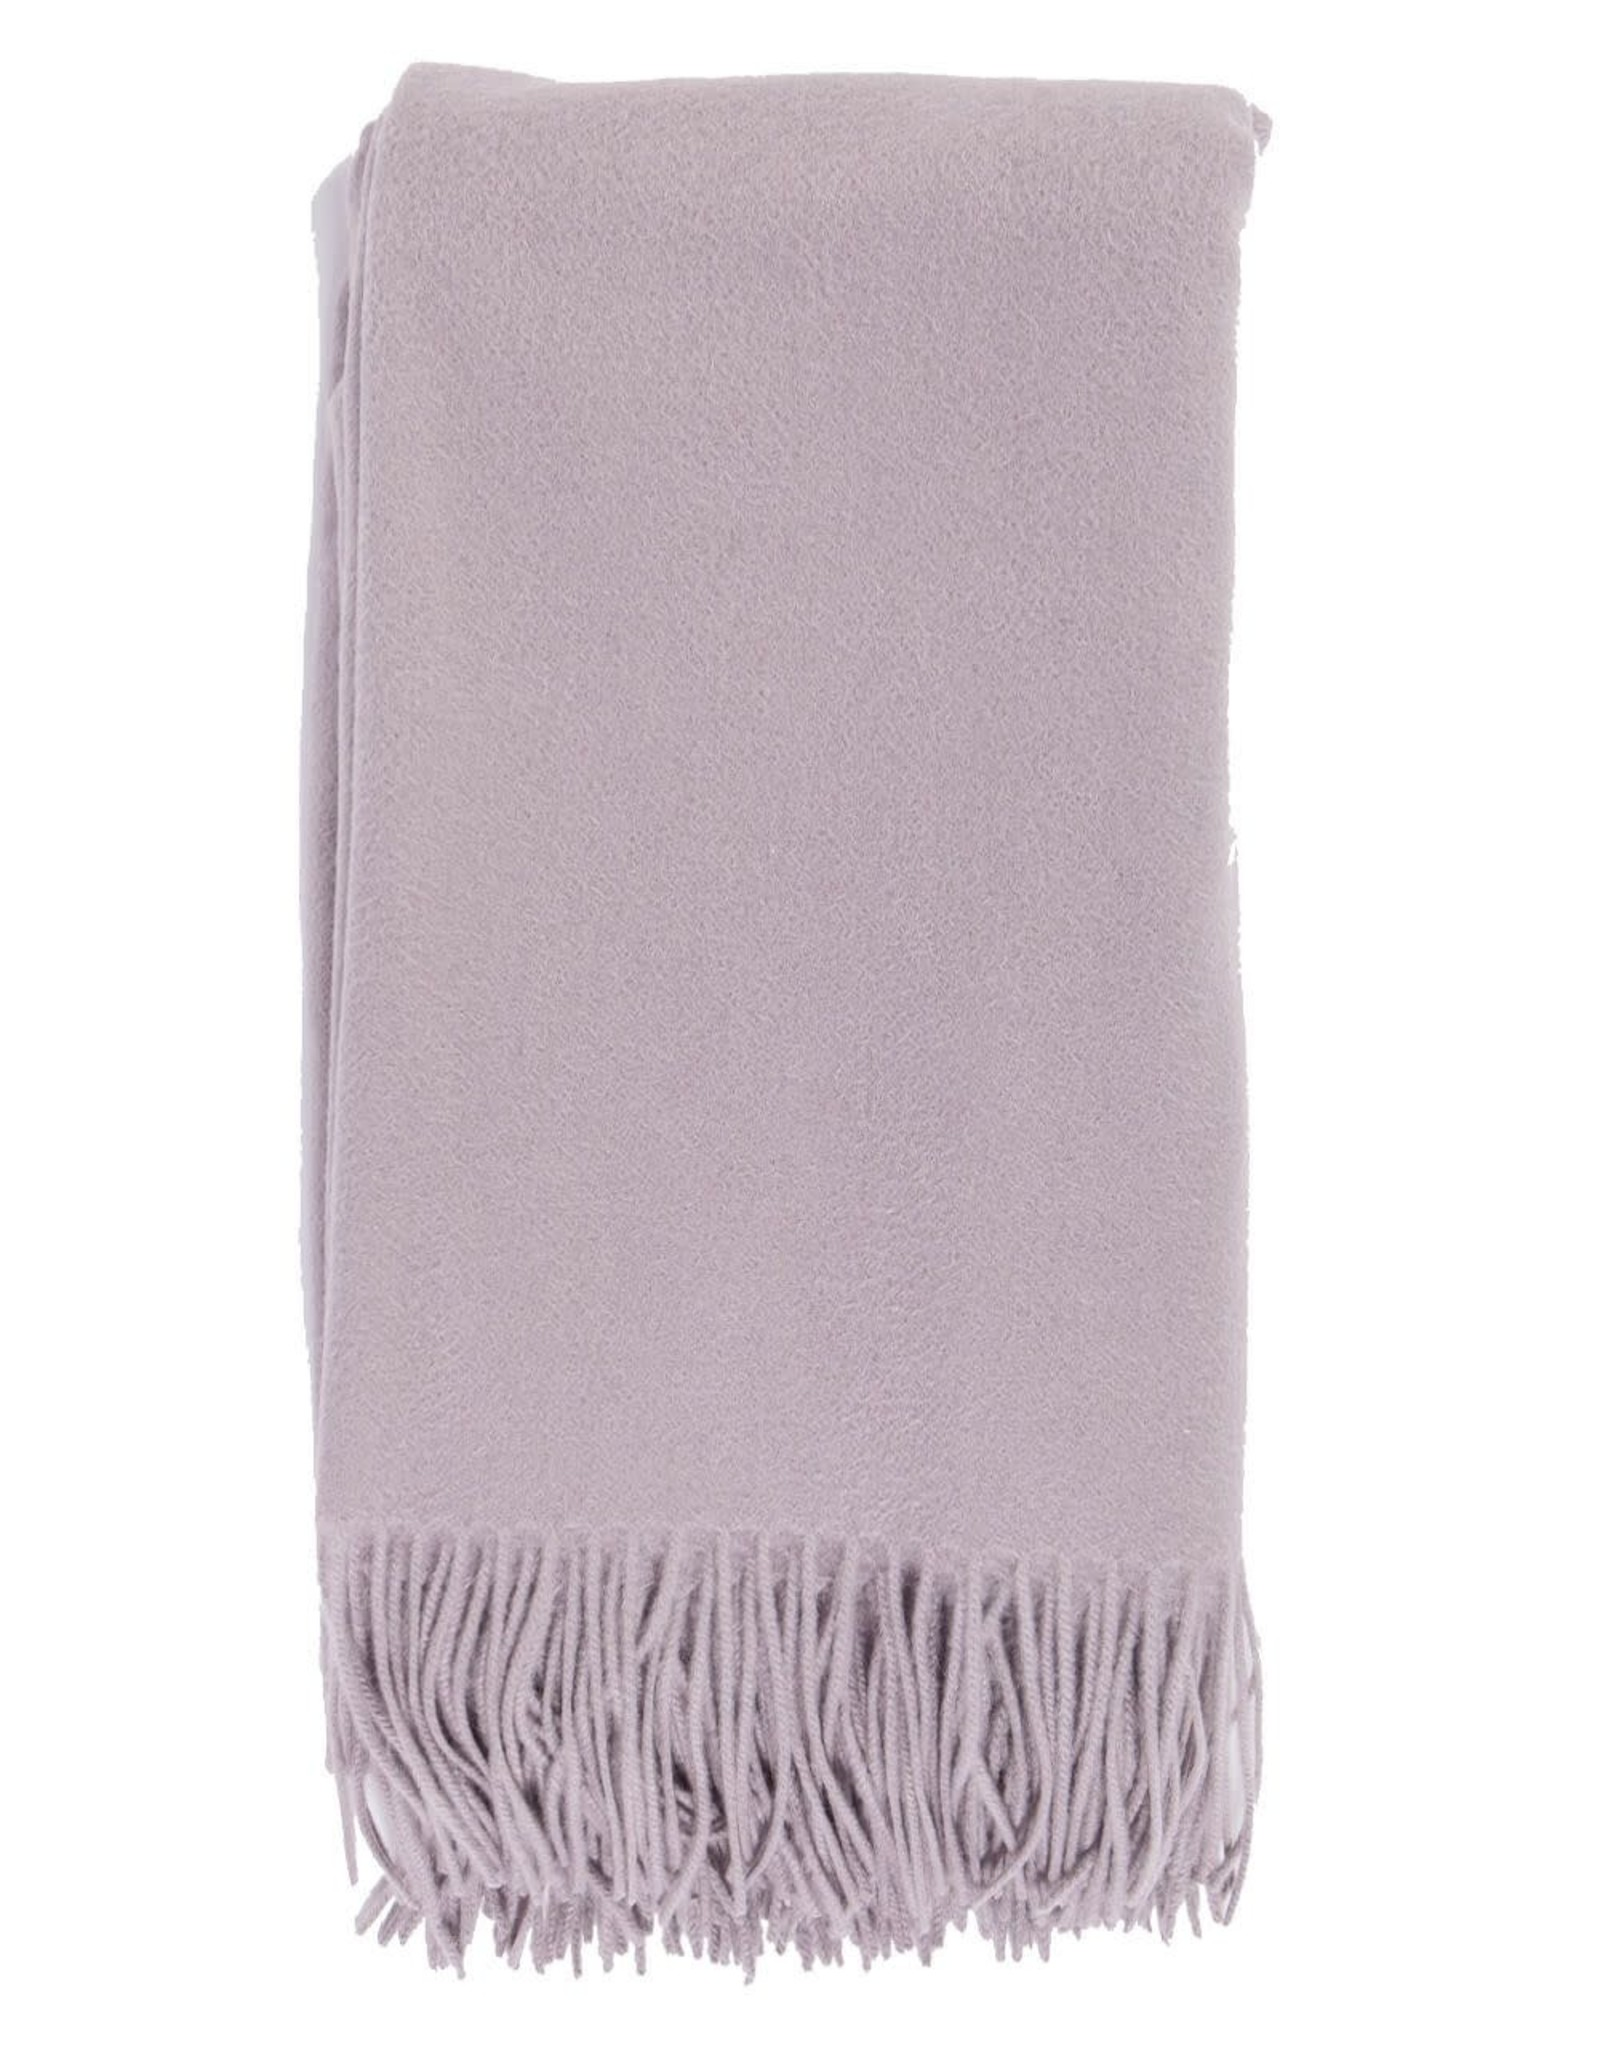 Alashan Cashmere Co. Merino/Cashmere Ripple Finish Throw Platinum